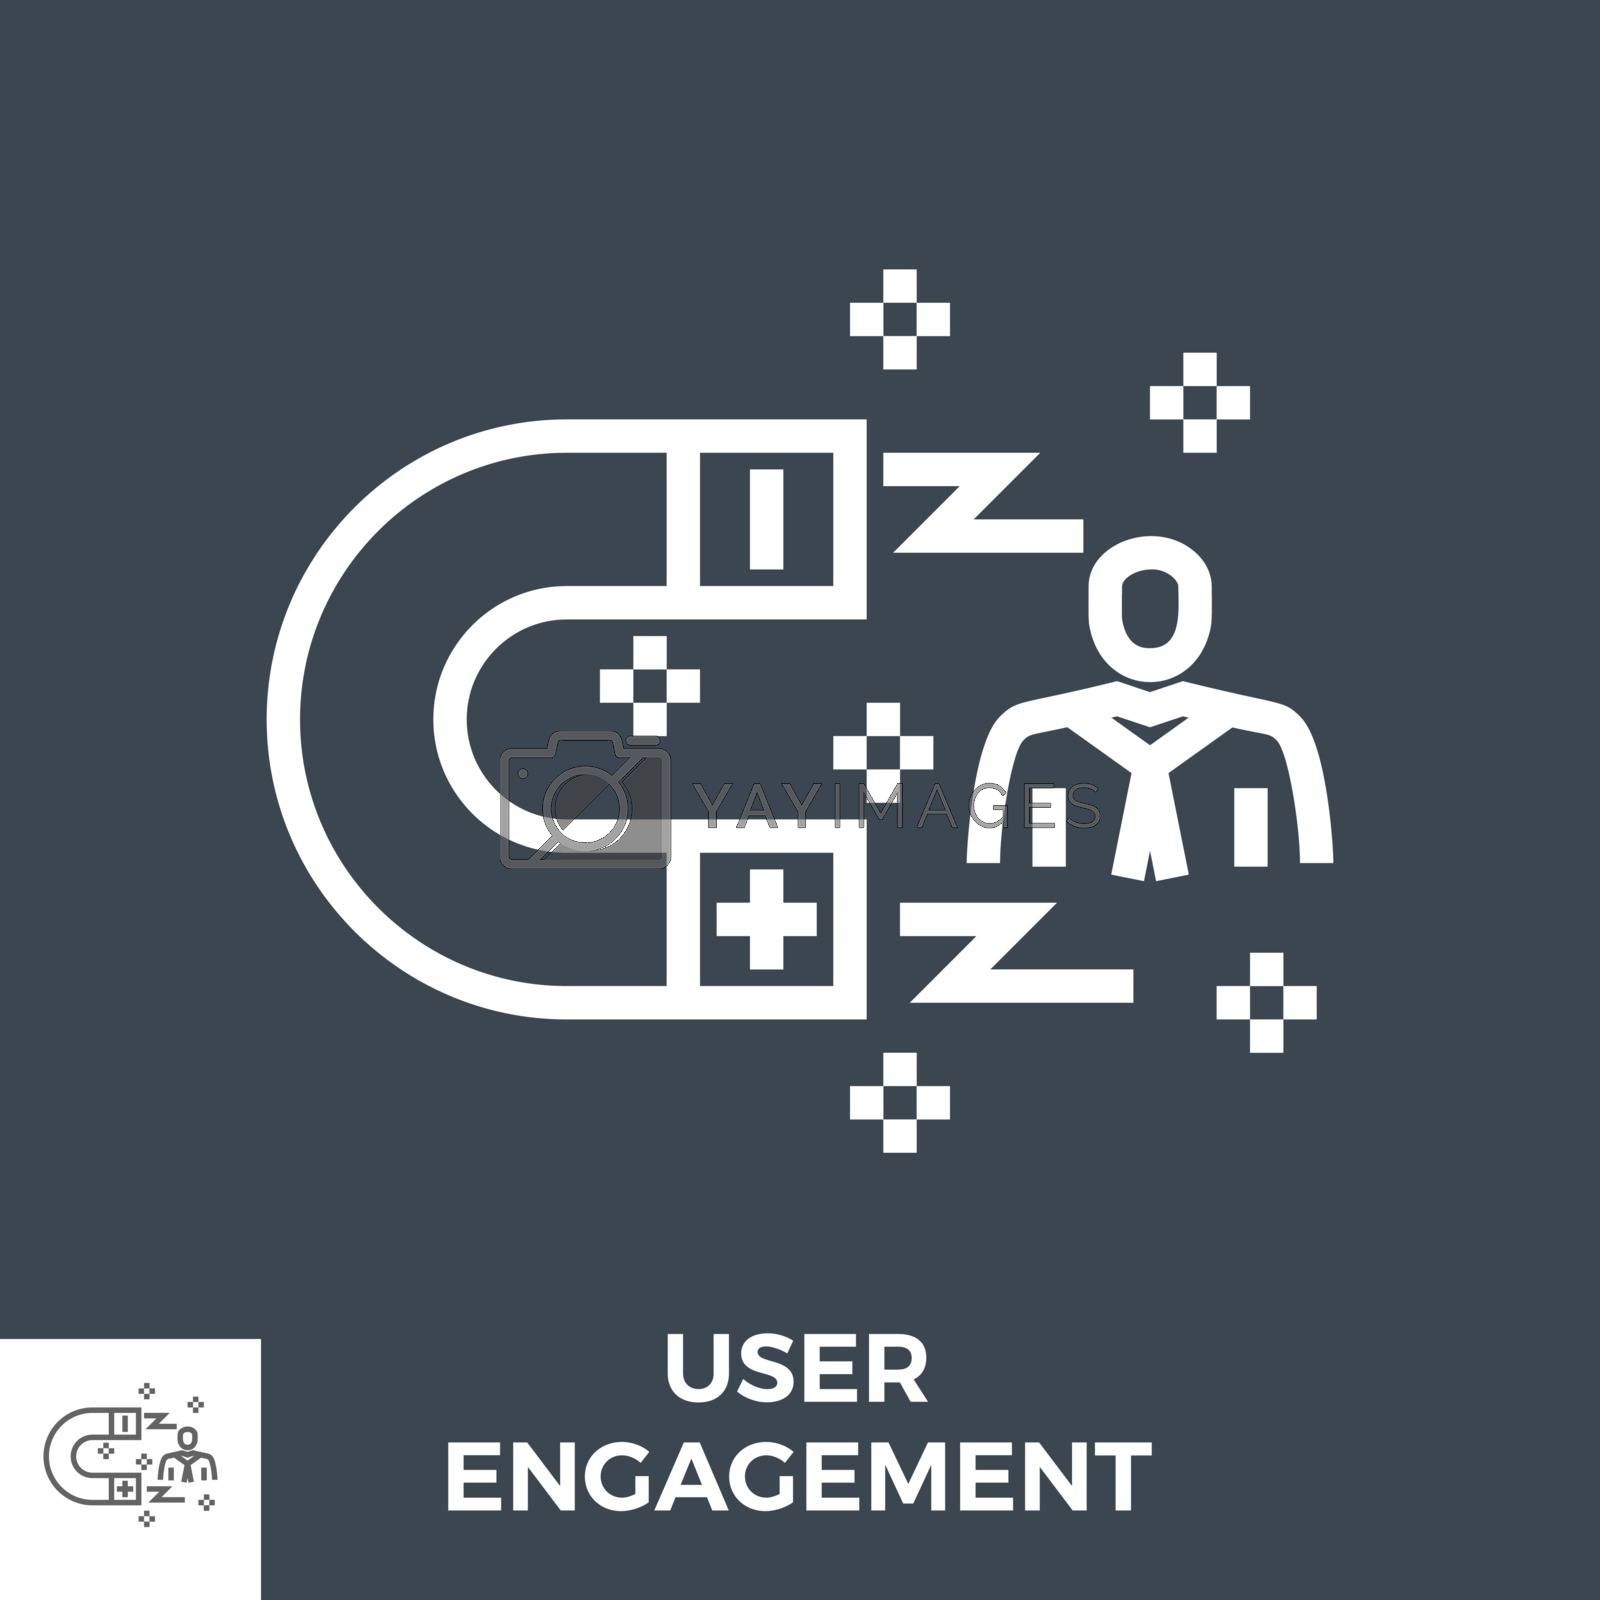 User Engagement Thin Line Vector Icon Isolated on the Black Background.